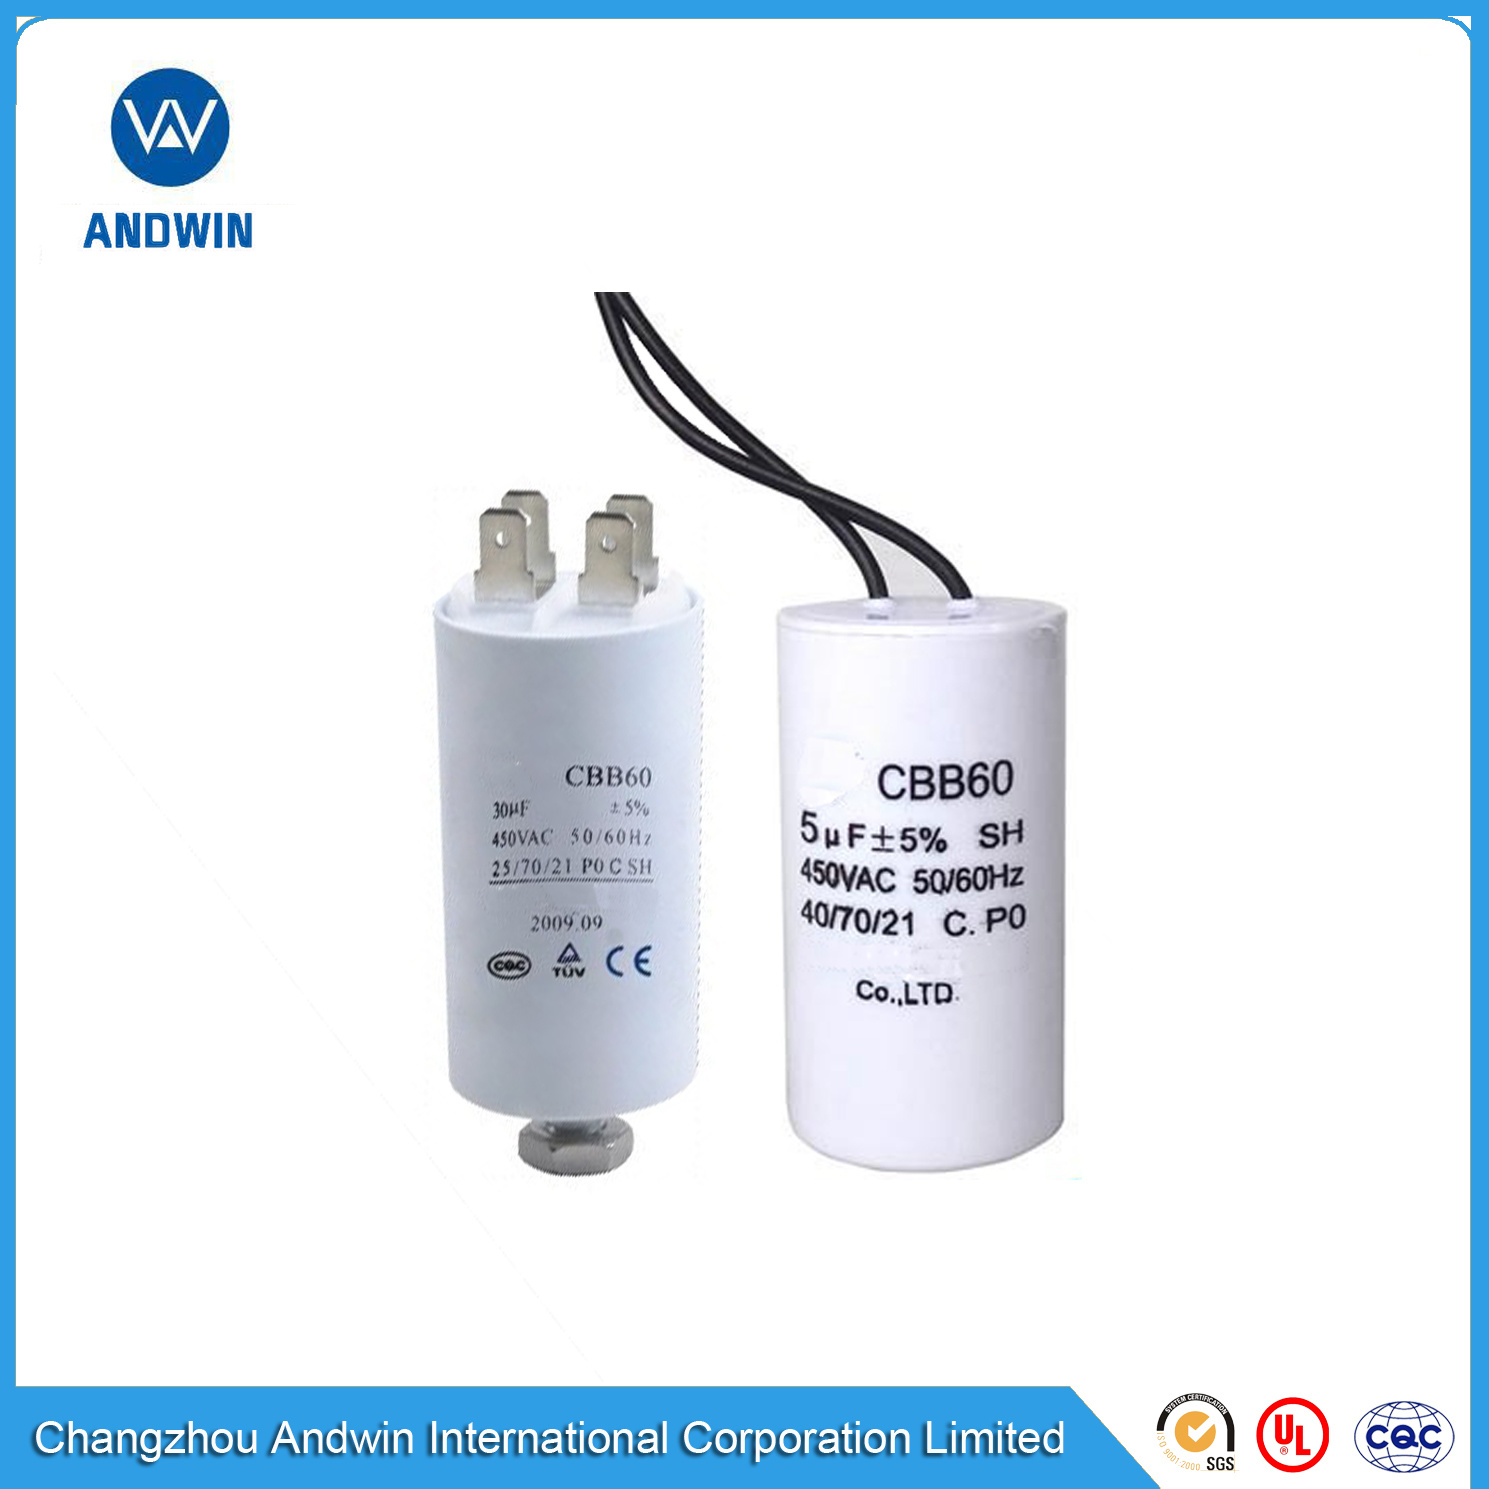 CBB65A-1 Cylindrical Motor Capacitor Compressors and Motors Motor Condenser 30uF AC 450V Suitable for Air Conditioners